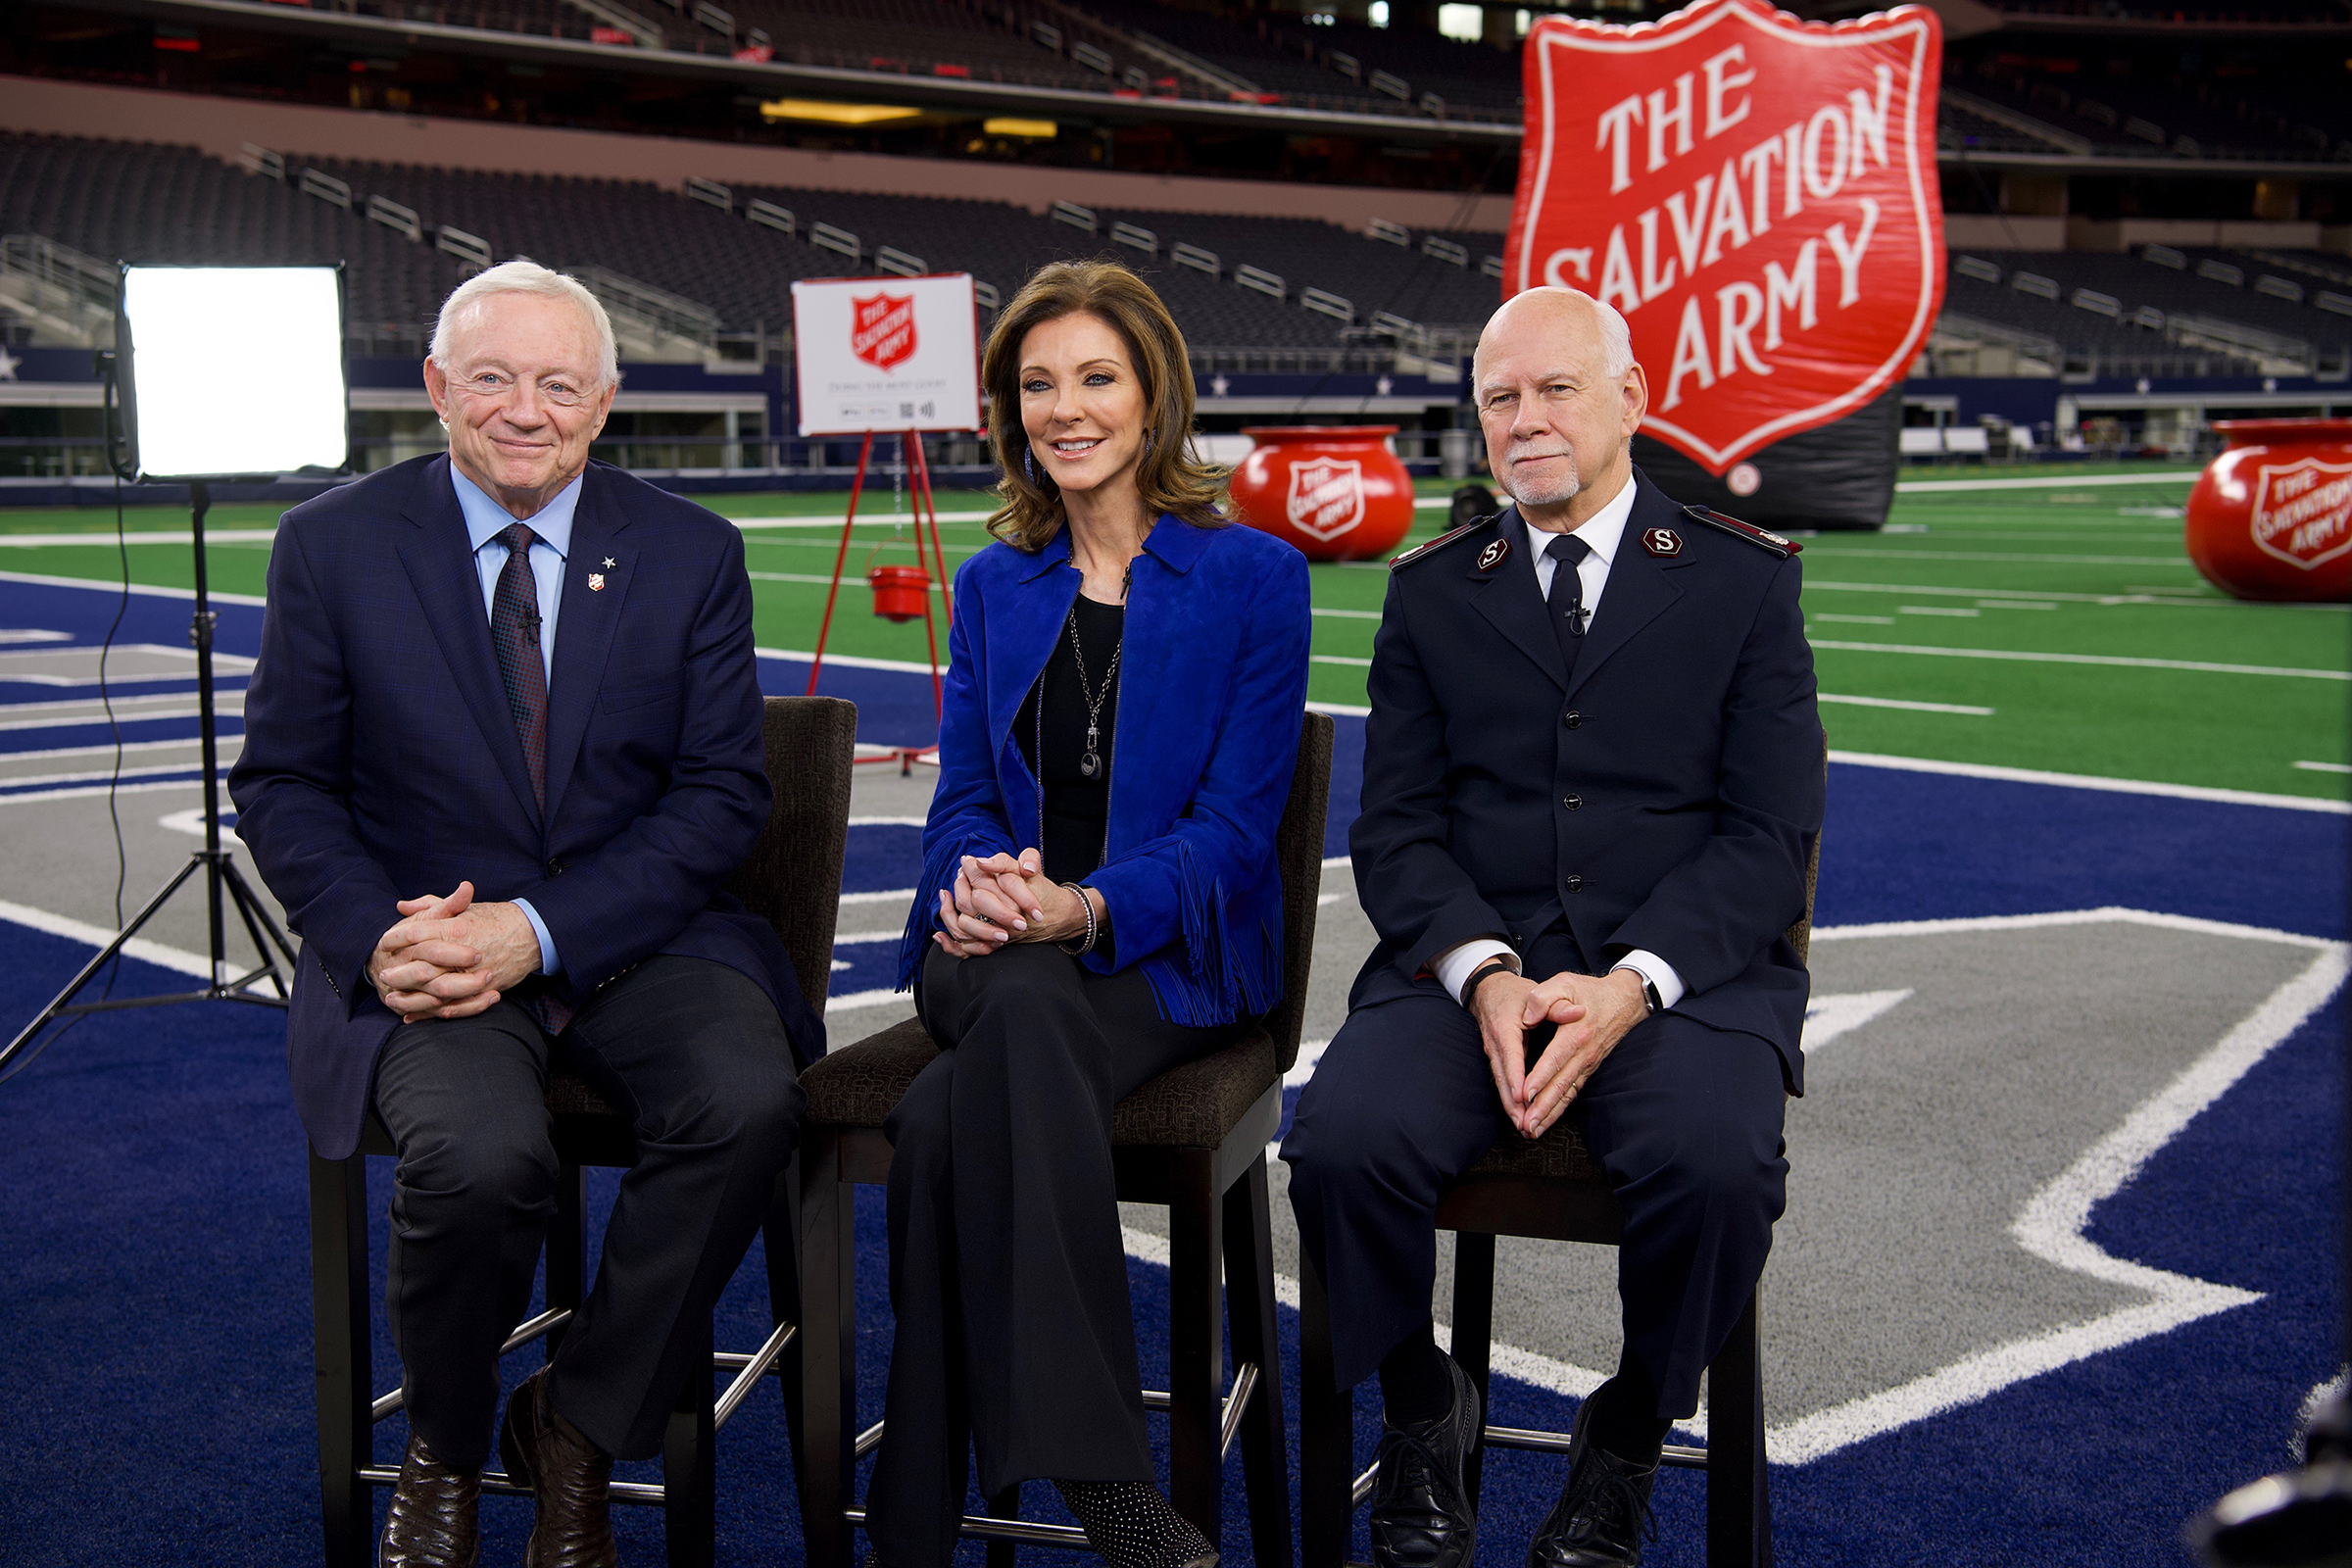 The Salvation Army and the Dallas Cowboys have been partners for 23 years